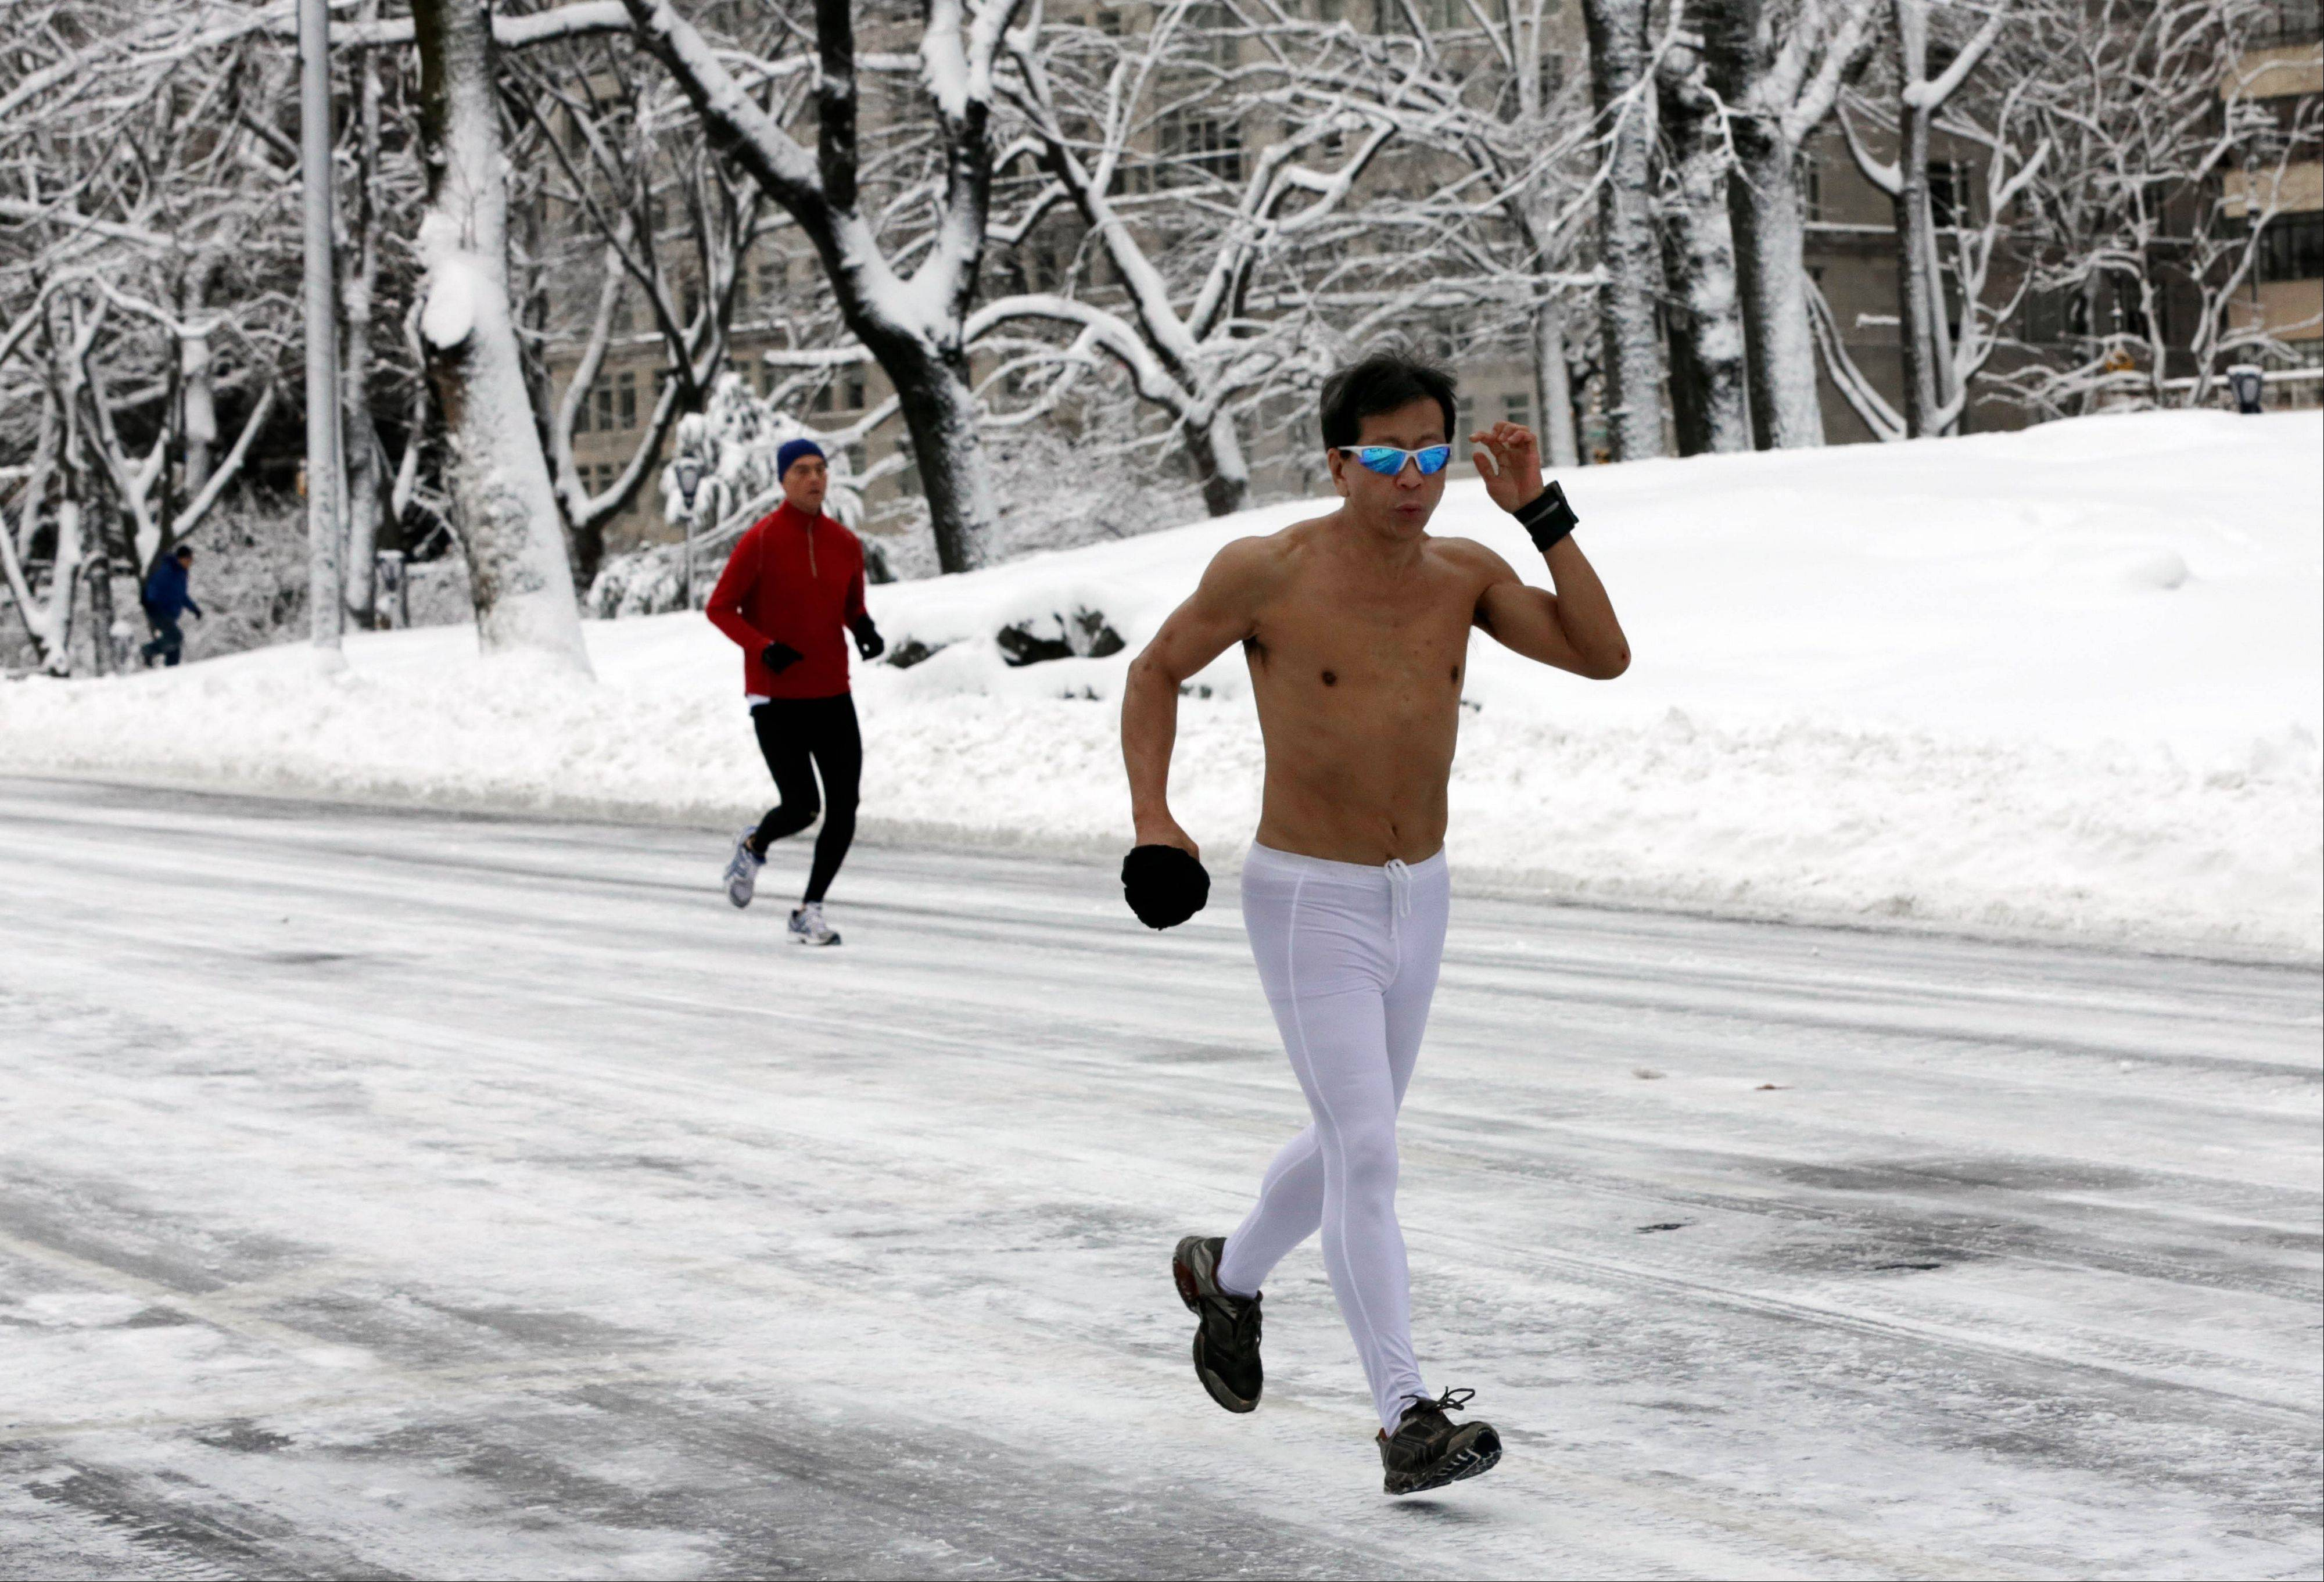 A shirtless jogger runs through New York's Central Park Saturday, Feb. 9, 2013. In New York City, the snow total in Central Park was 11.4 inches by 8 a.m.